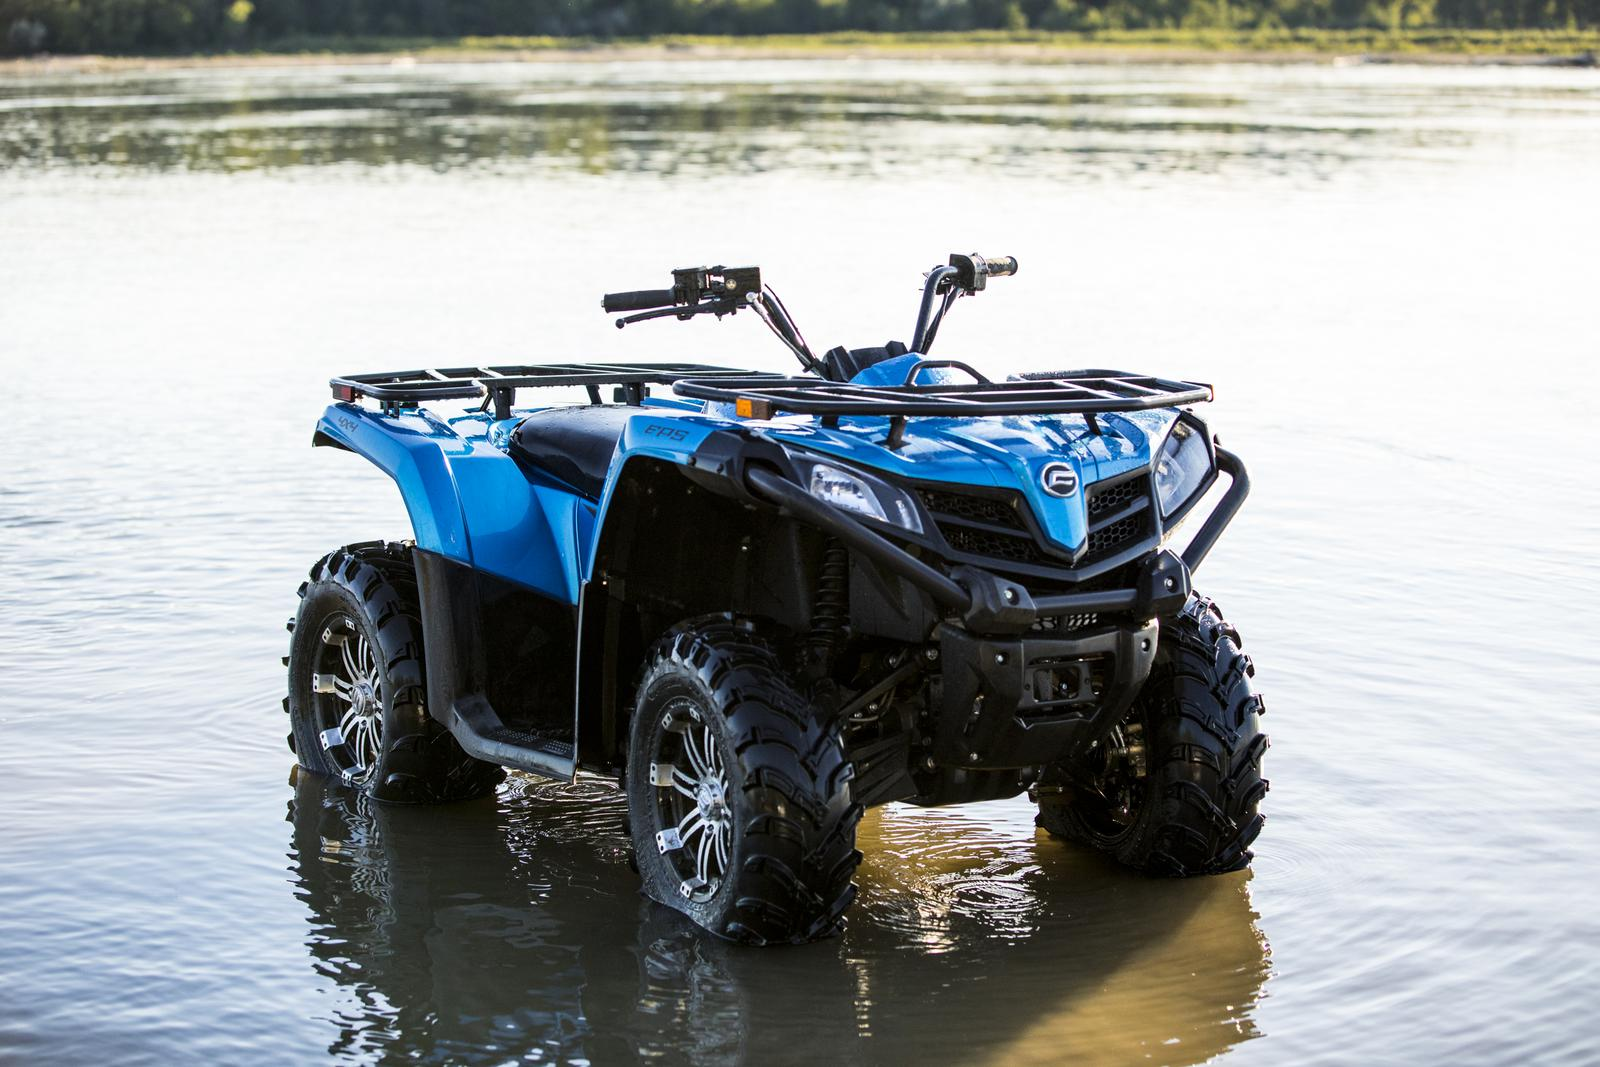 Blue CFMOTO ATV parked in shallow water